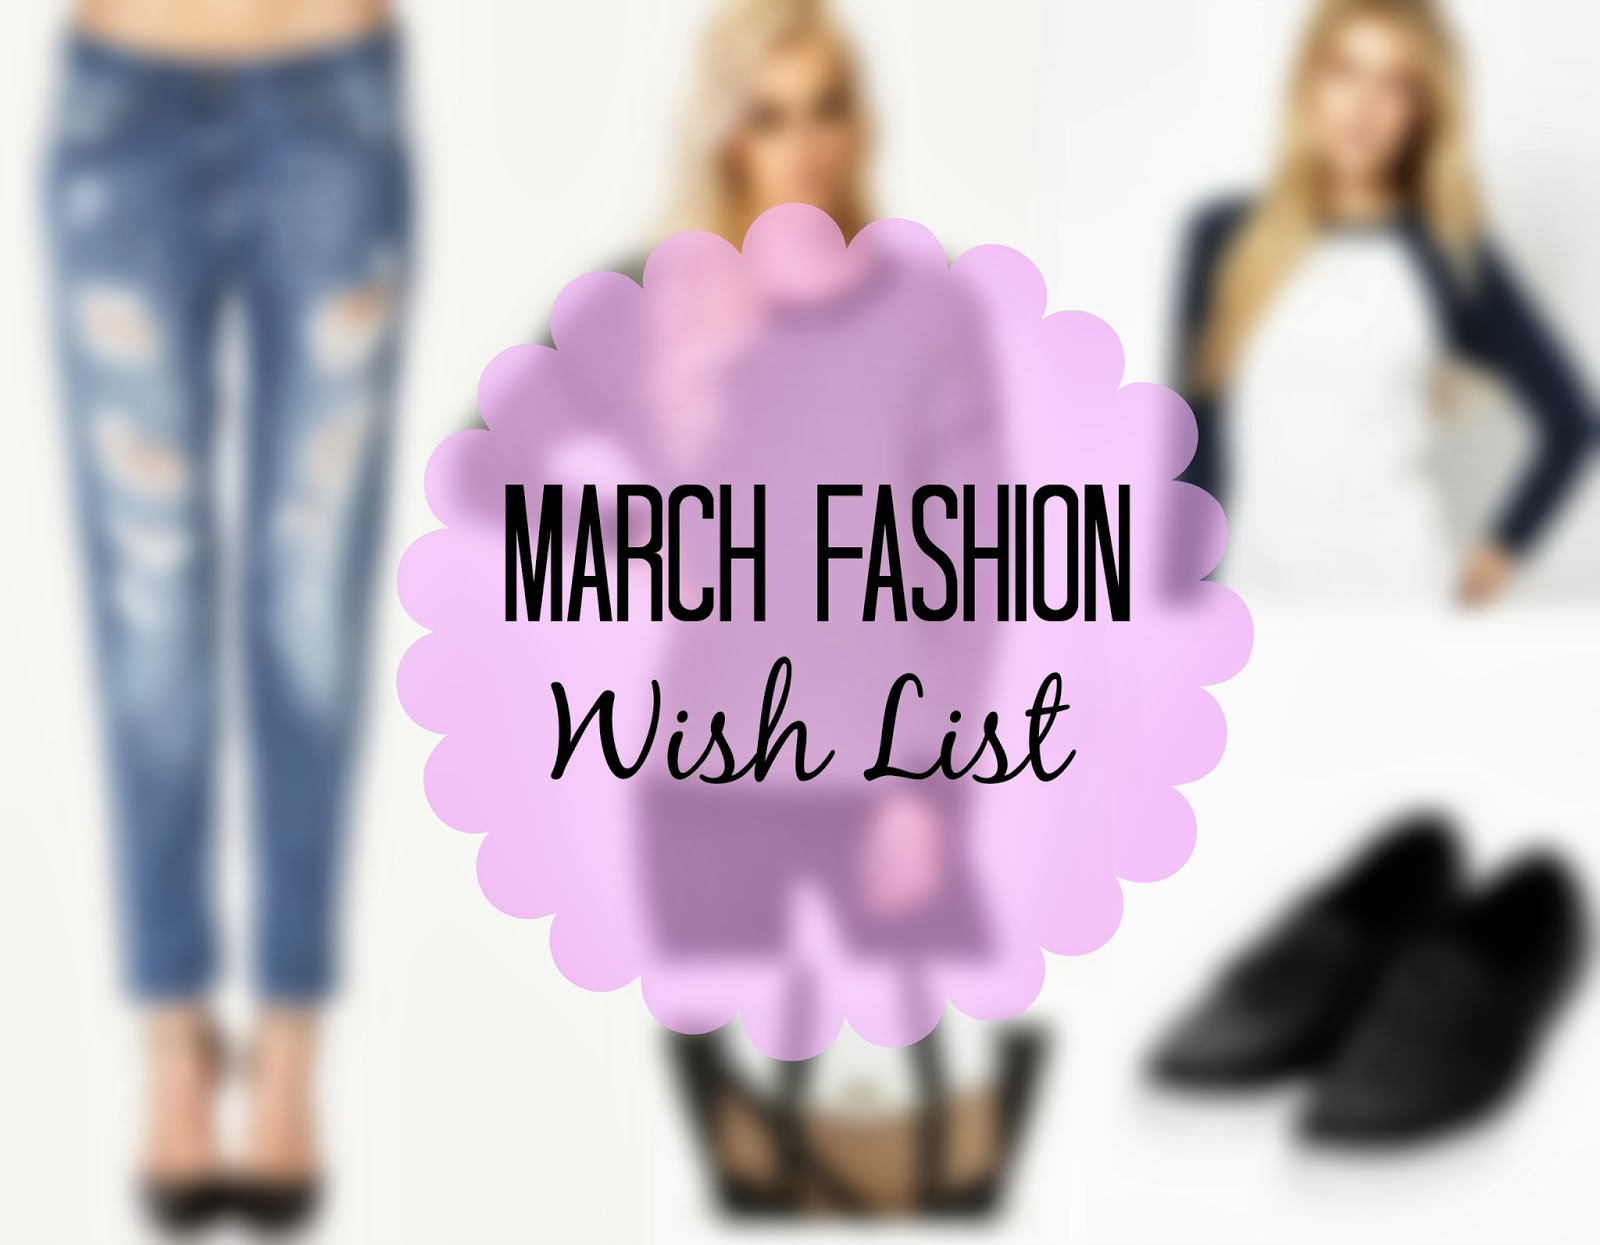 March Fashion Wish List